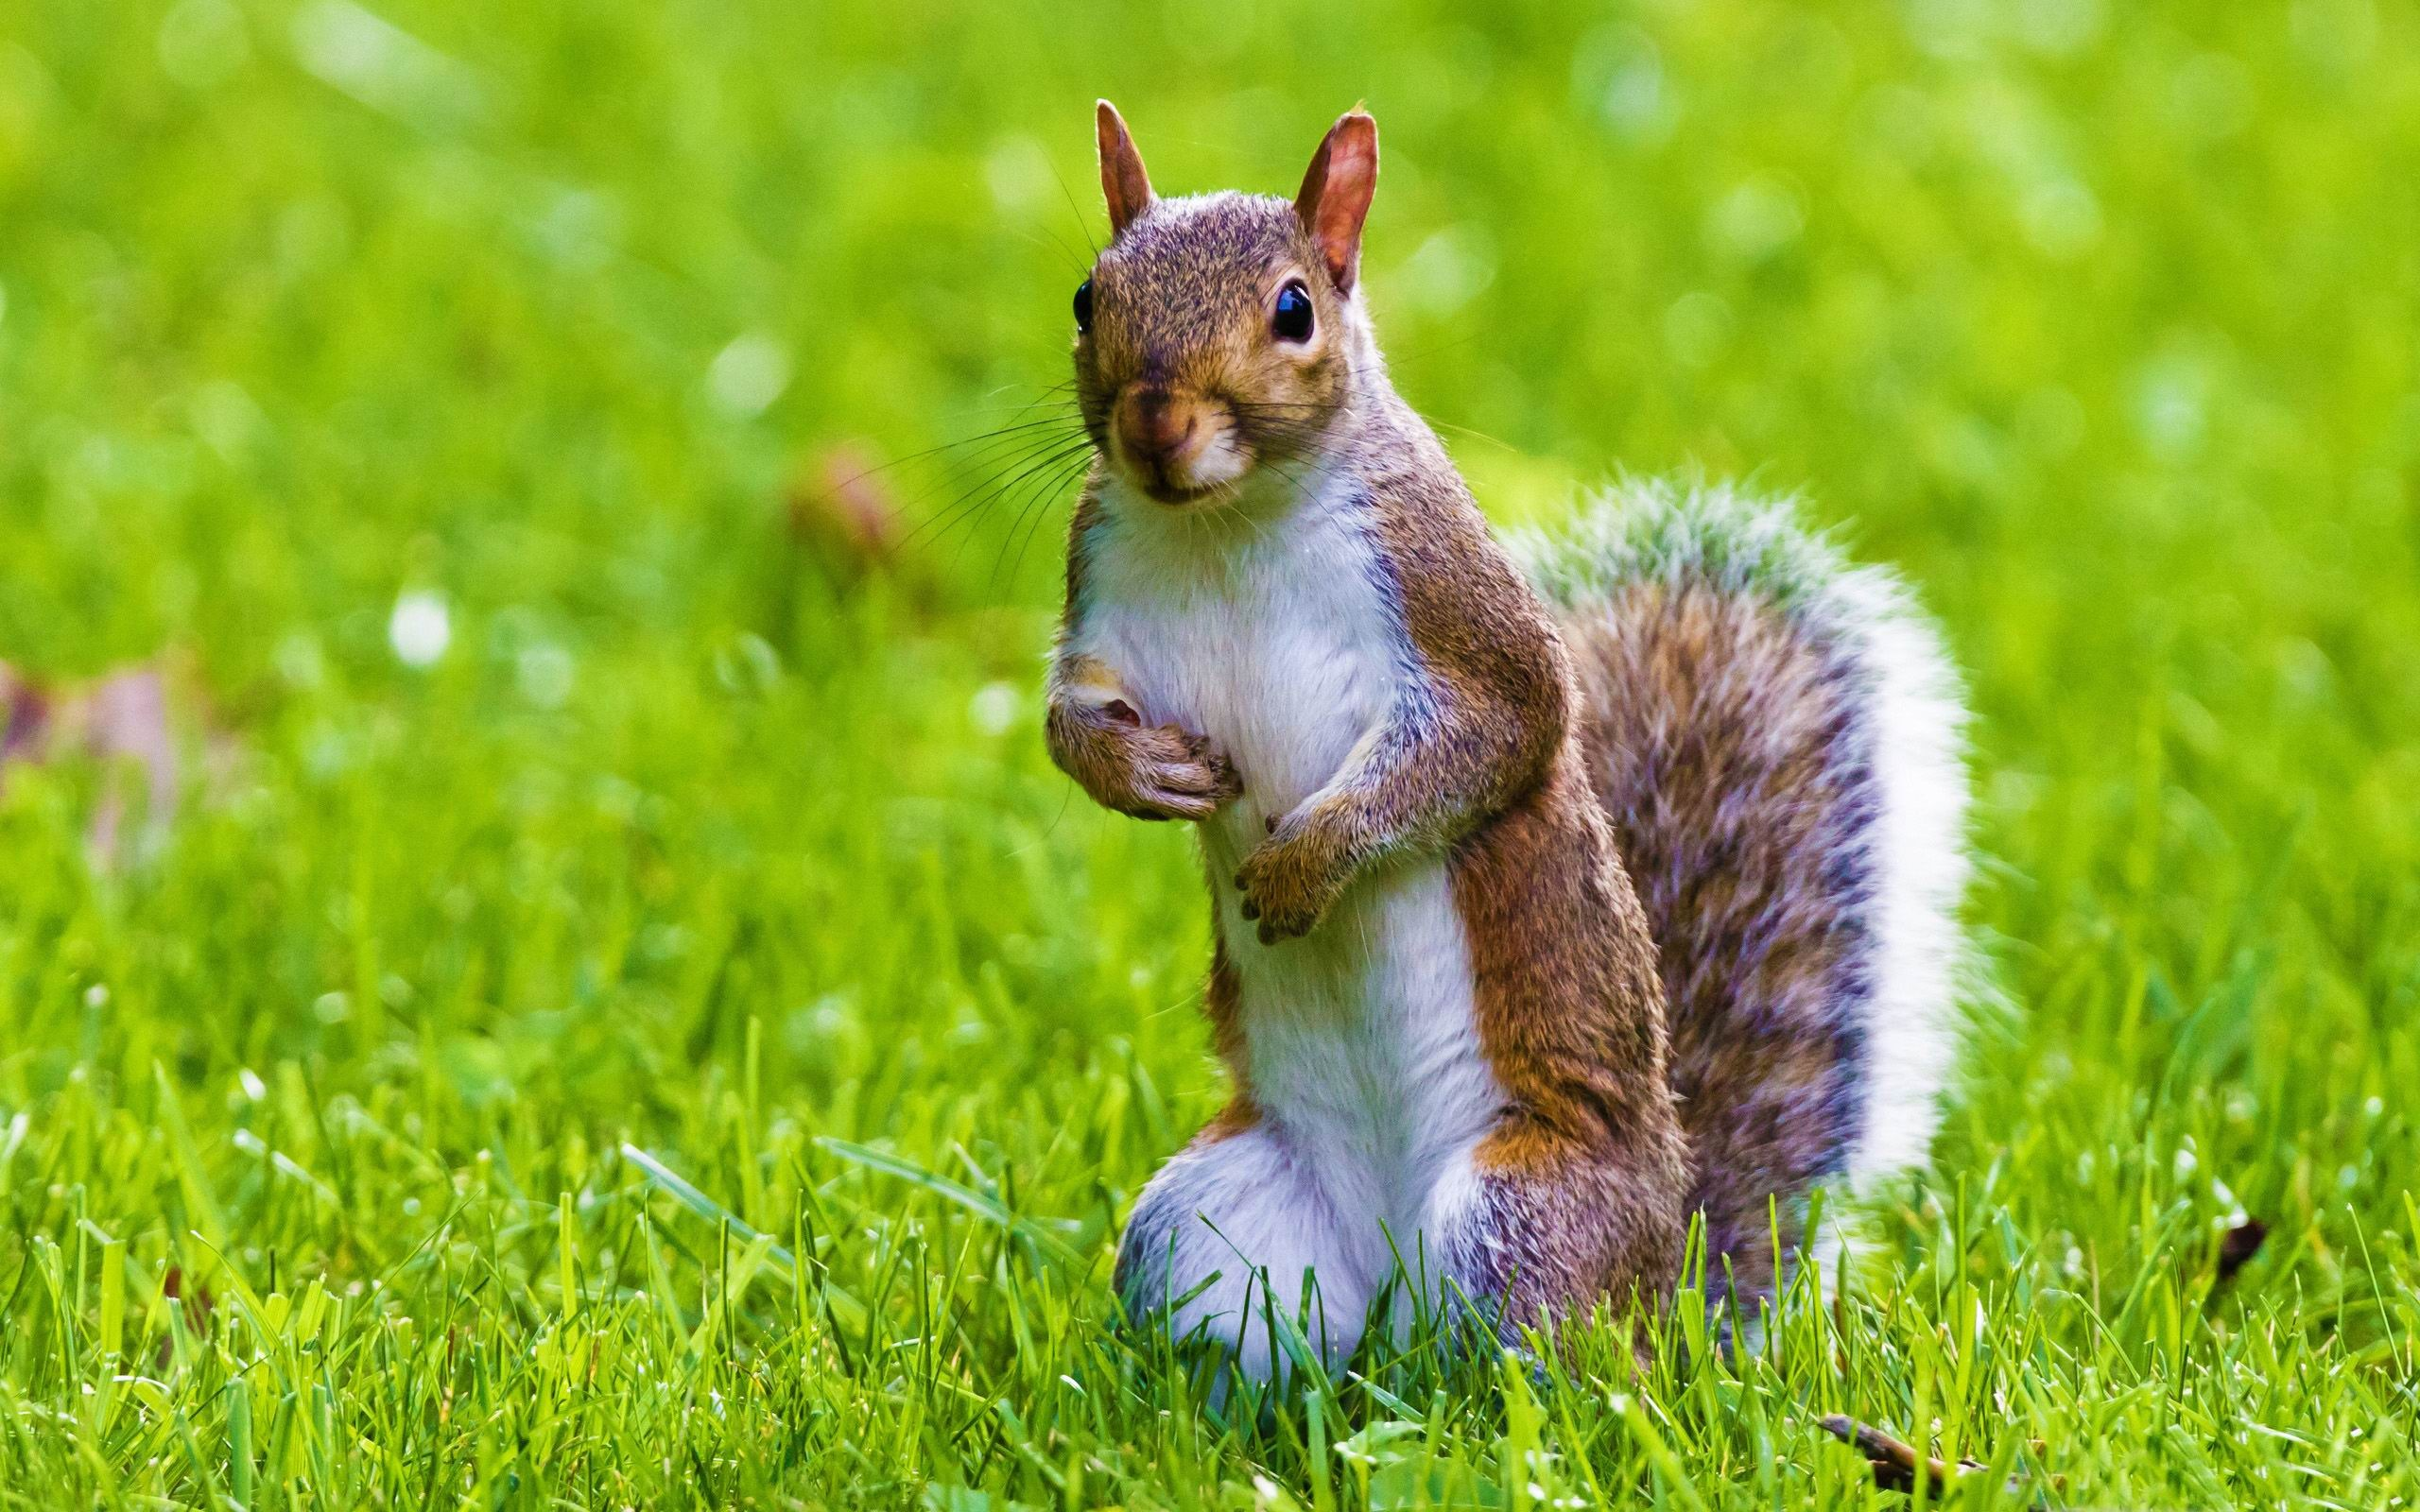 cute squirrel wild animal desktop wallpaper HD Wallpapers 2560x1600